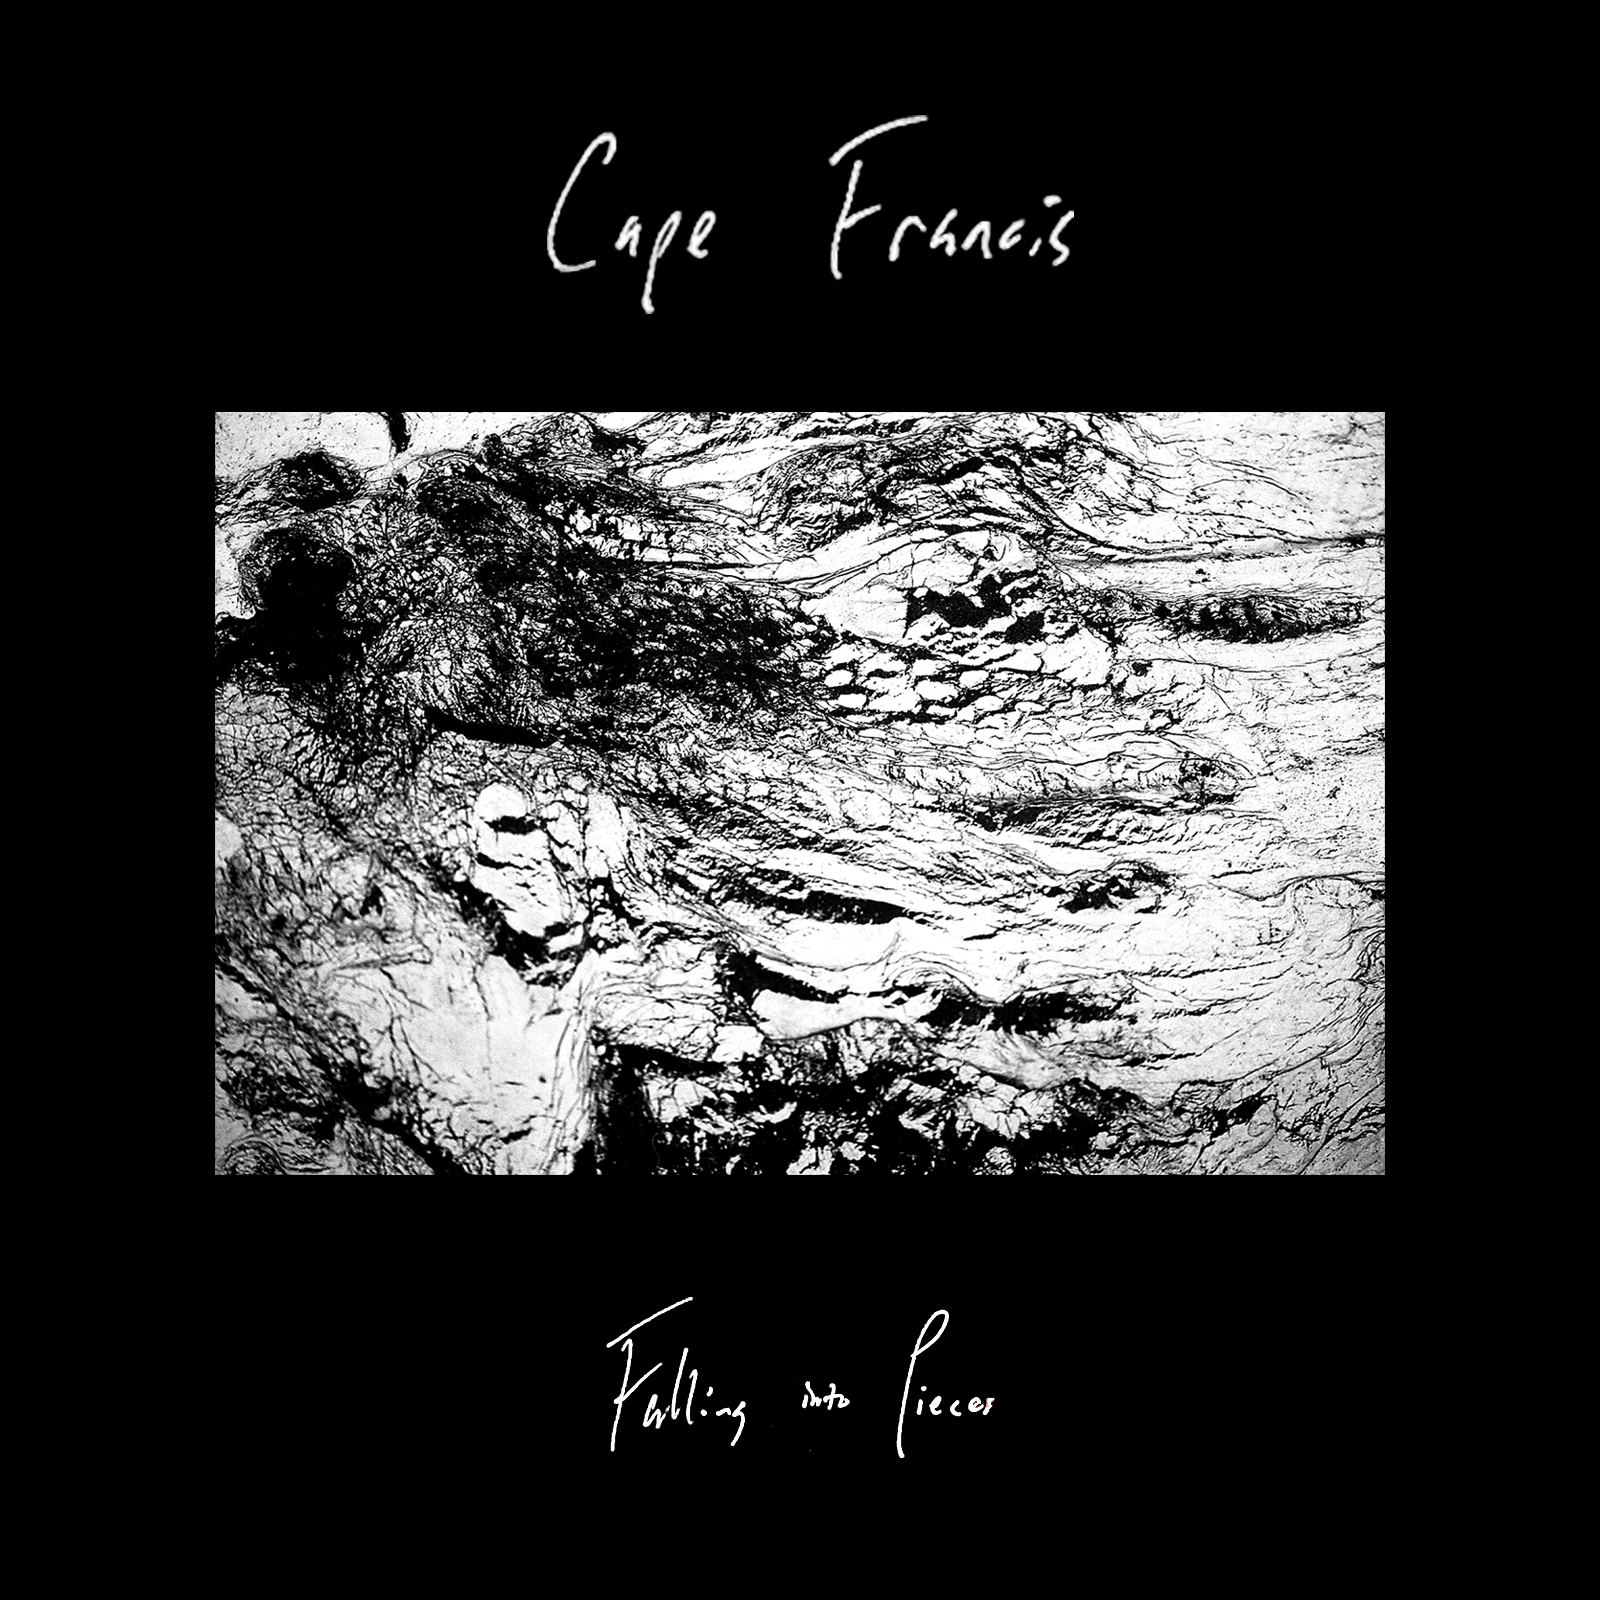 Falling into Pieces - Cape Francis